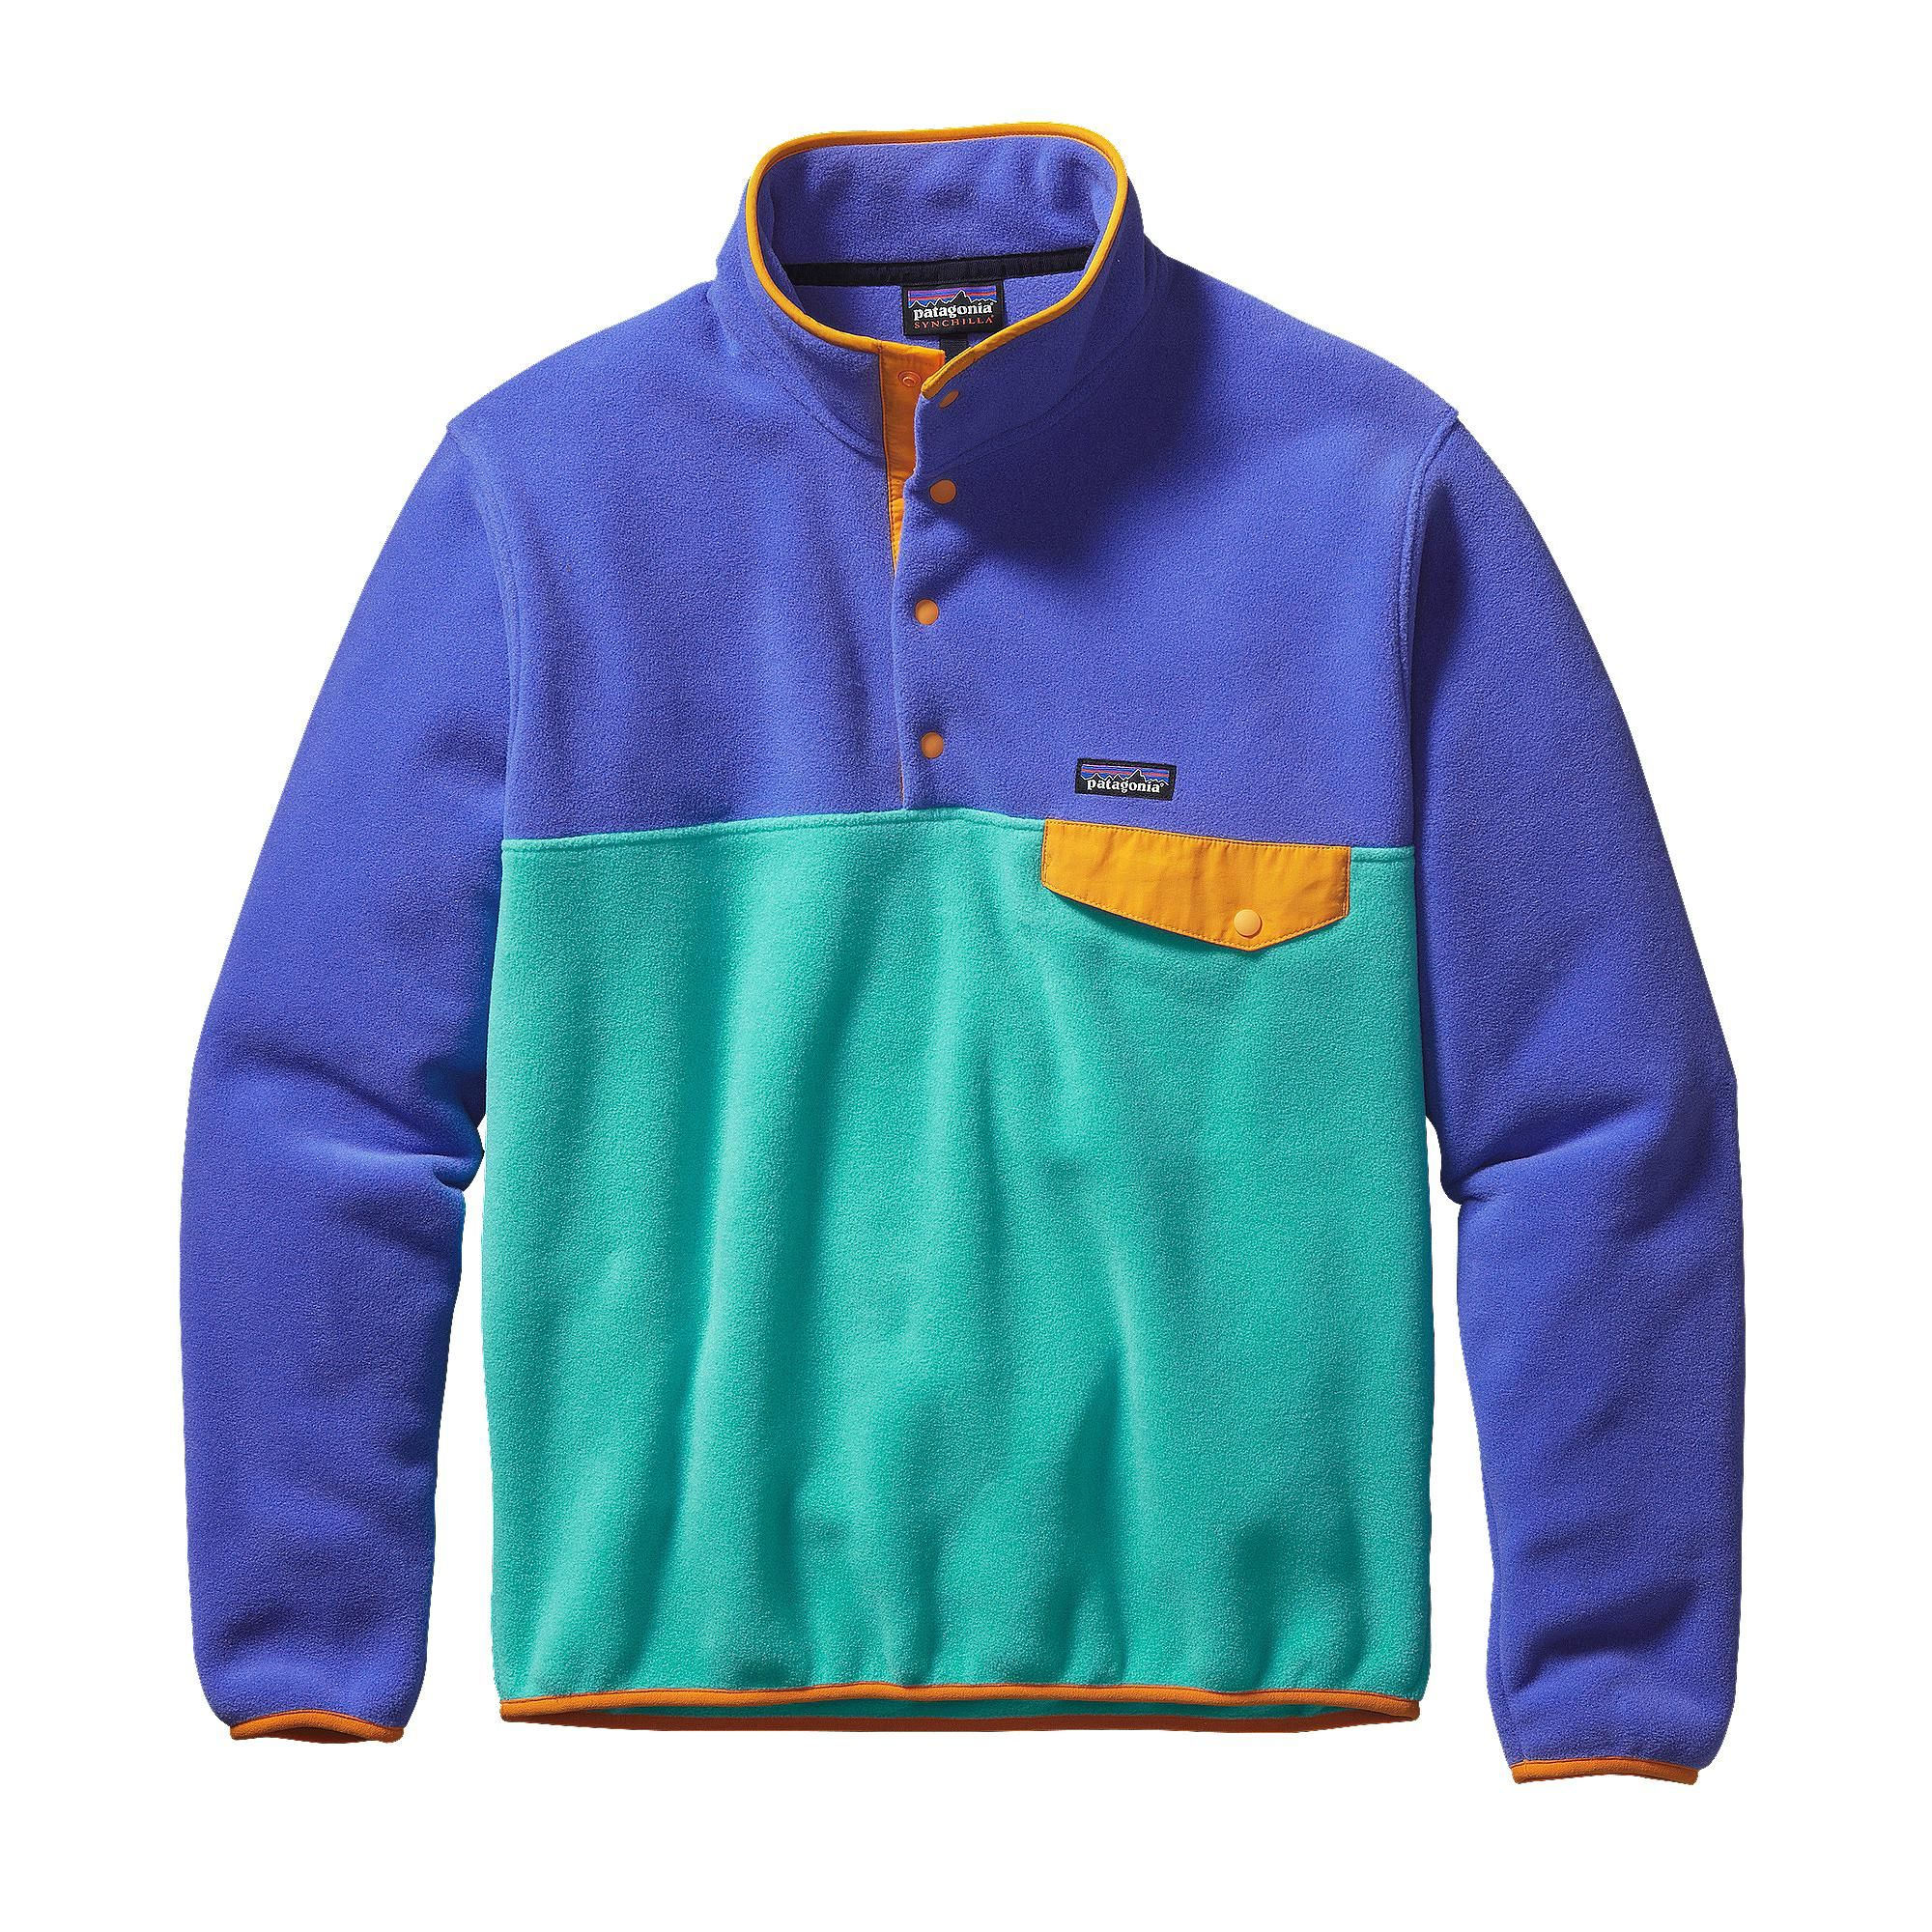 Howling Turquoise. A classic pullover the Patagonia Men's